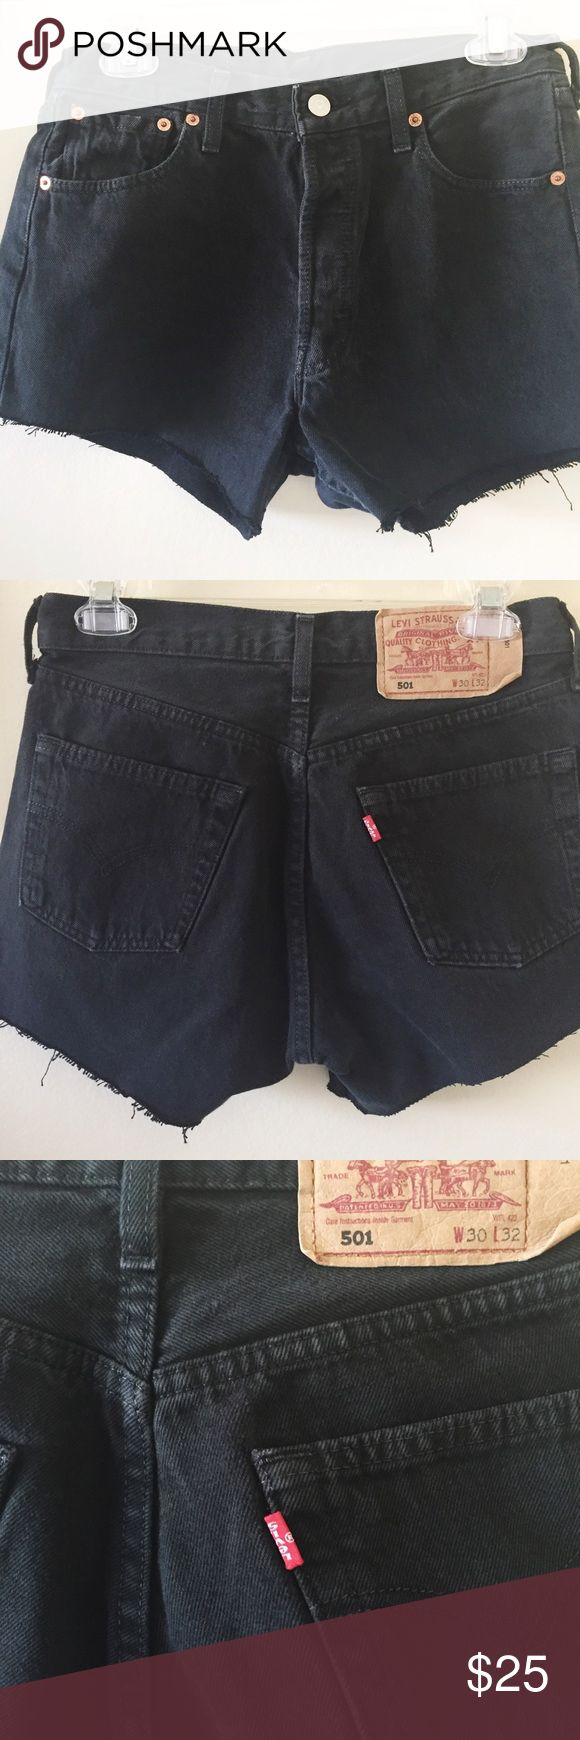 Black High waisted 501 denim shorts 🖤 in W30   would fit a UK 8/10 #levis #highwaisted #shorts #ripped #rippedshorts #levisshorts #highwaistedshorts #summer #holiday #501 #denim #jeanshorts Levi's Shorts Jean Shorts